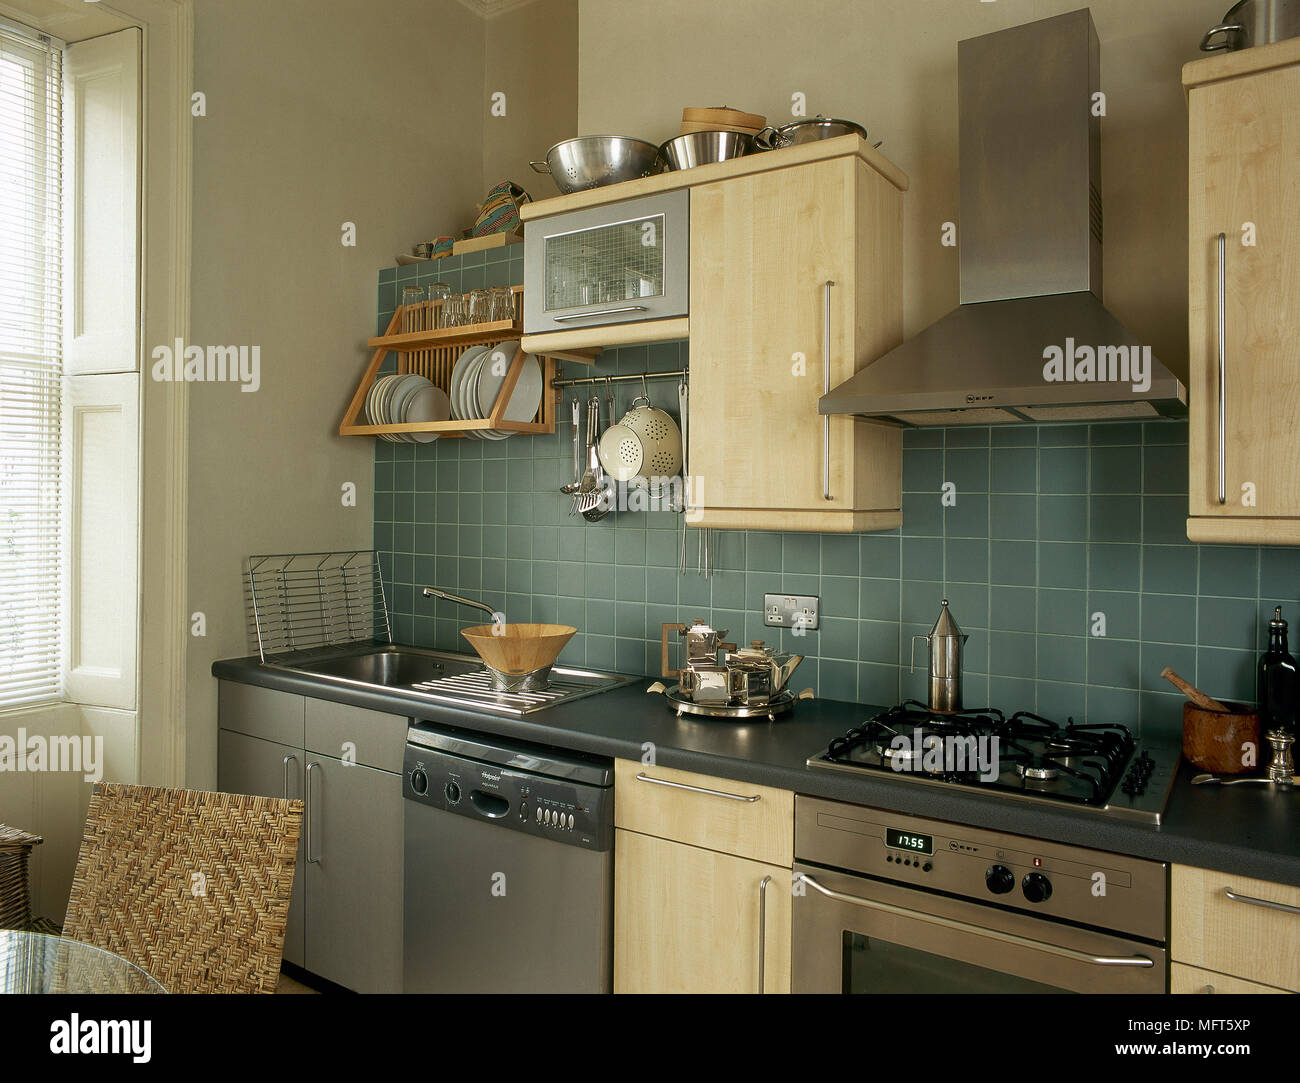 A Modern Kitchen With Blue Tiles Light Wood Cupboards Stainless